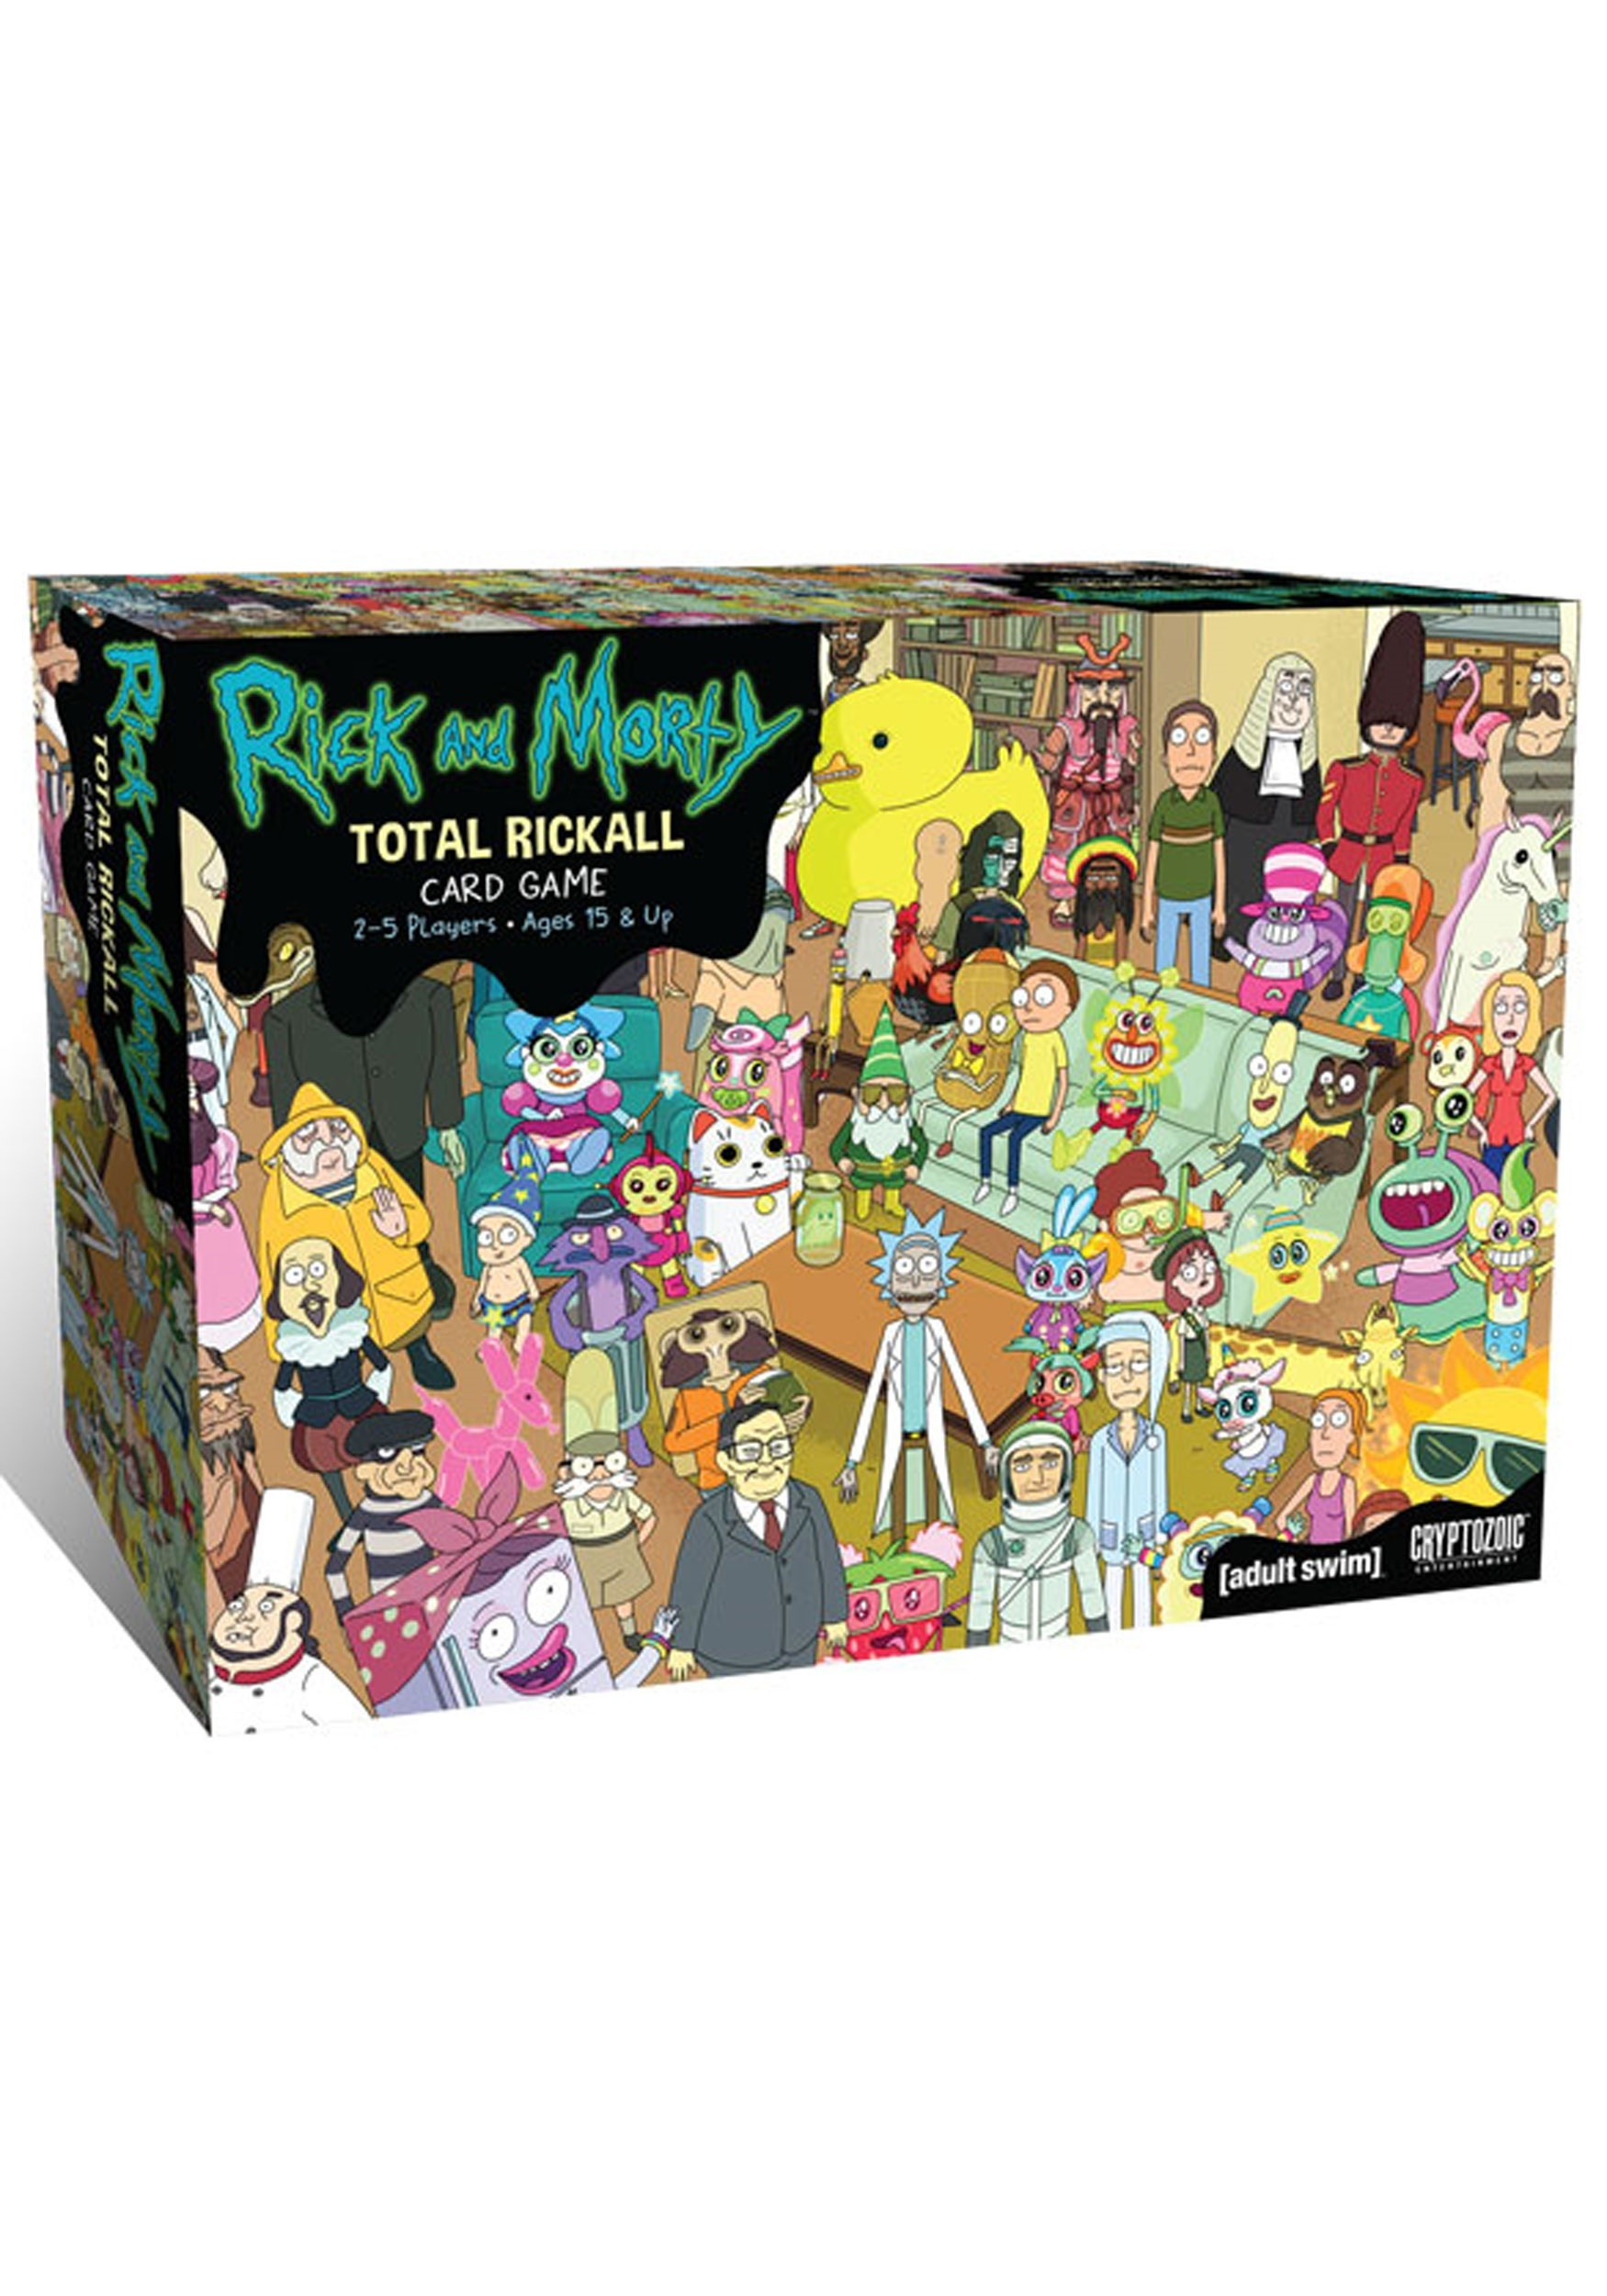 Total Rickall Cooperative Card Game: Rick and Morty